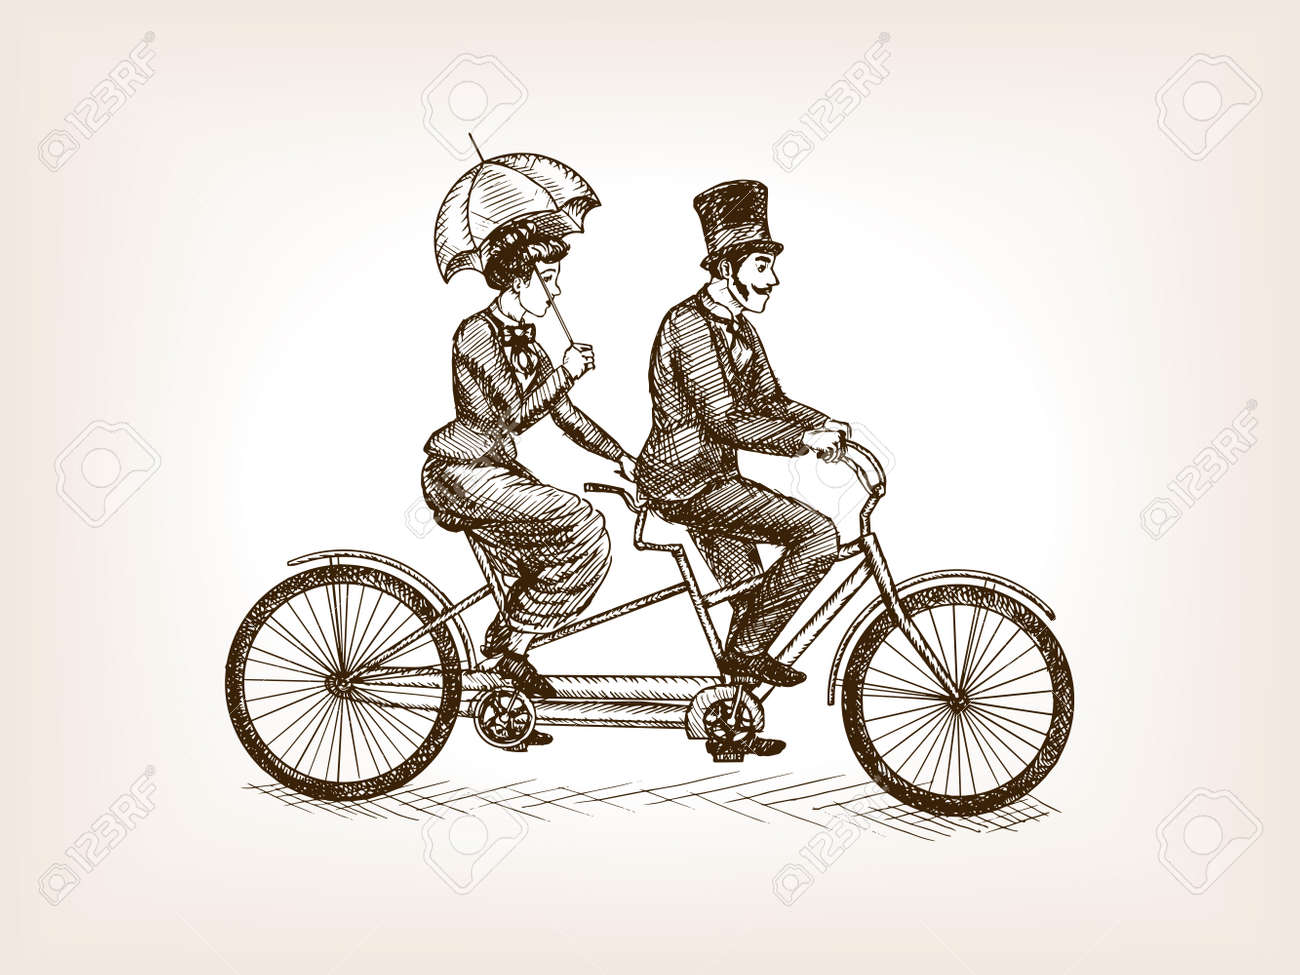 Vintage lady and gentleman ride tandem bicycle sketch style vector illustration. Old engraving imitation. - 59845193